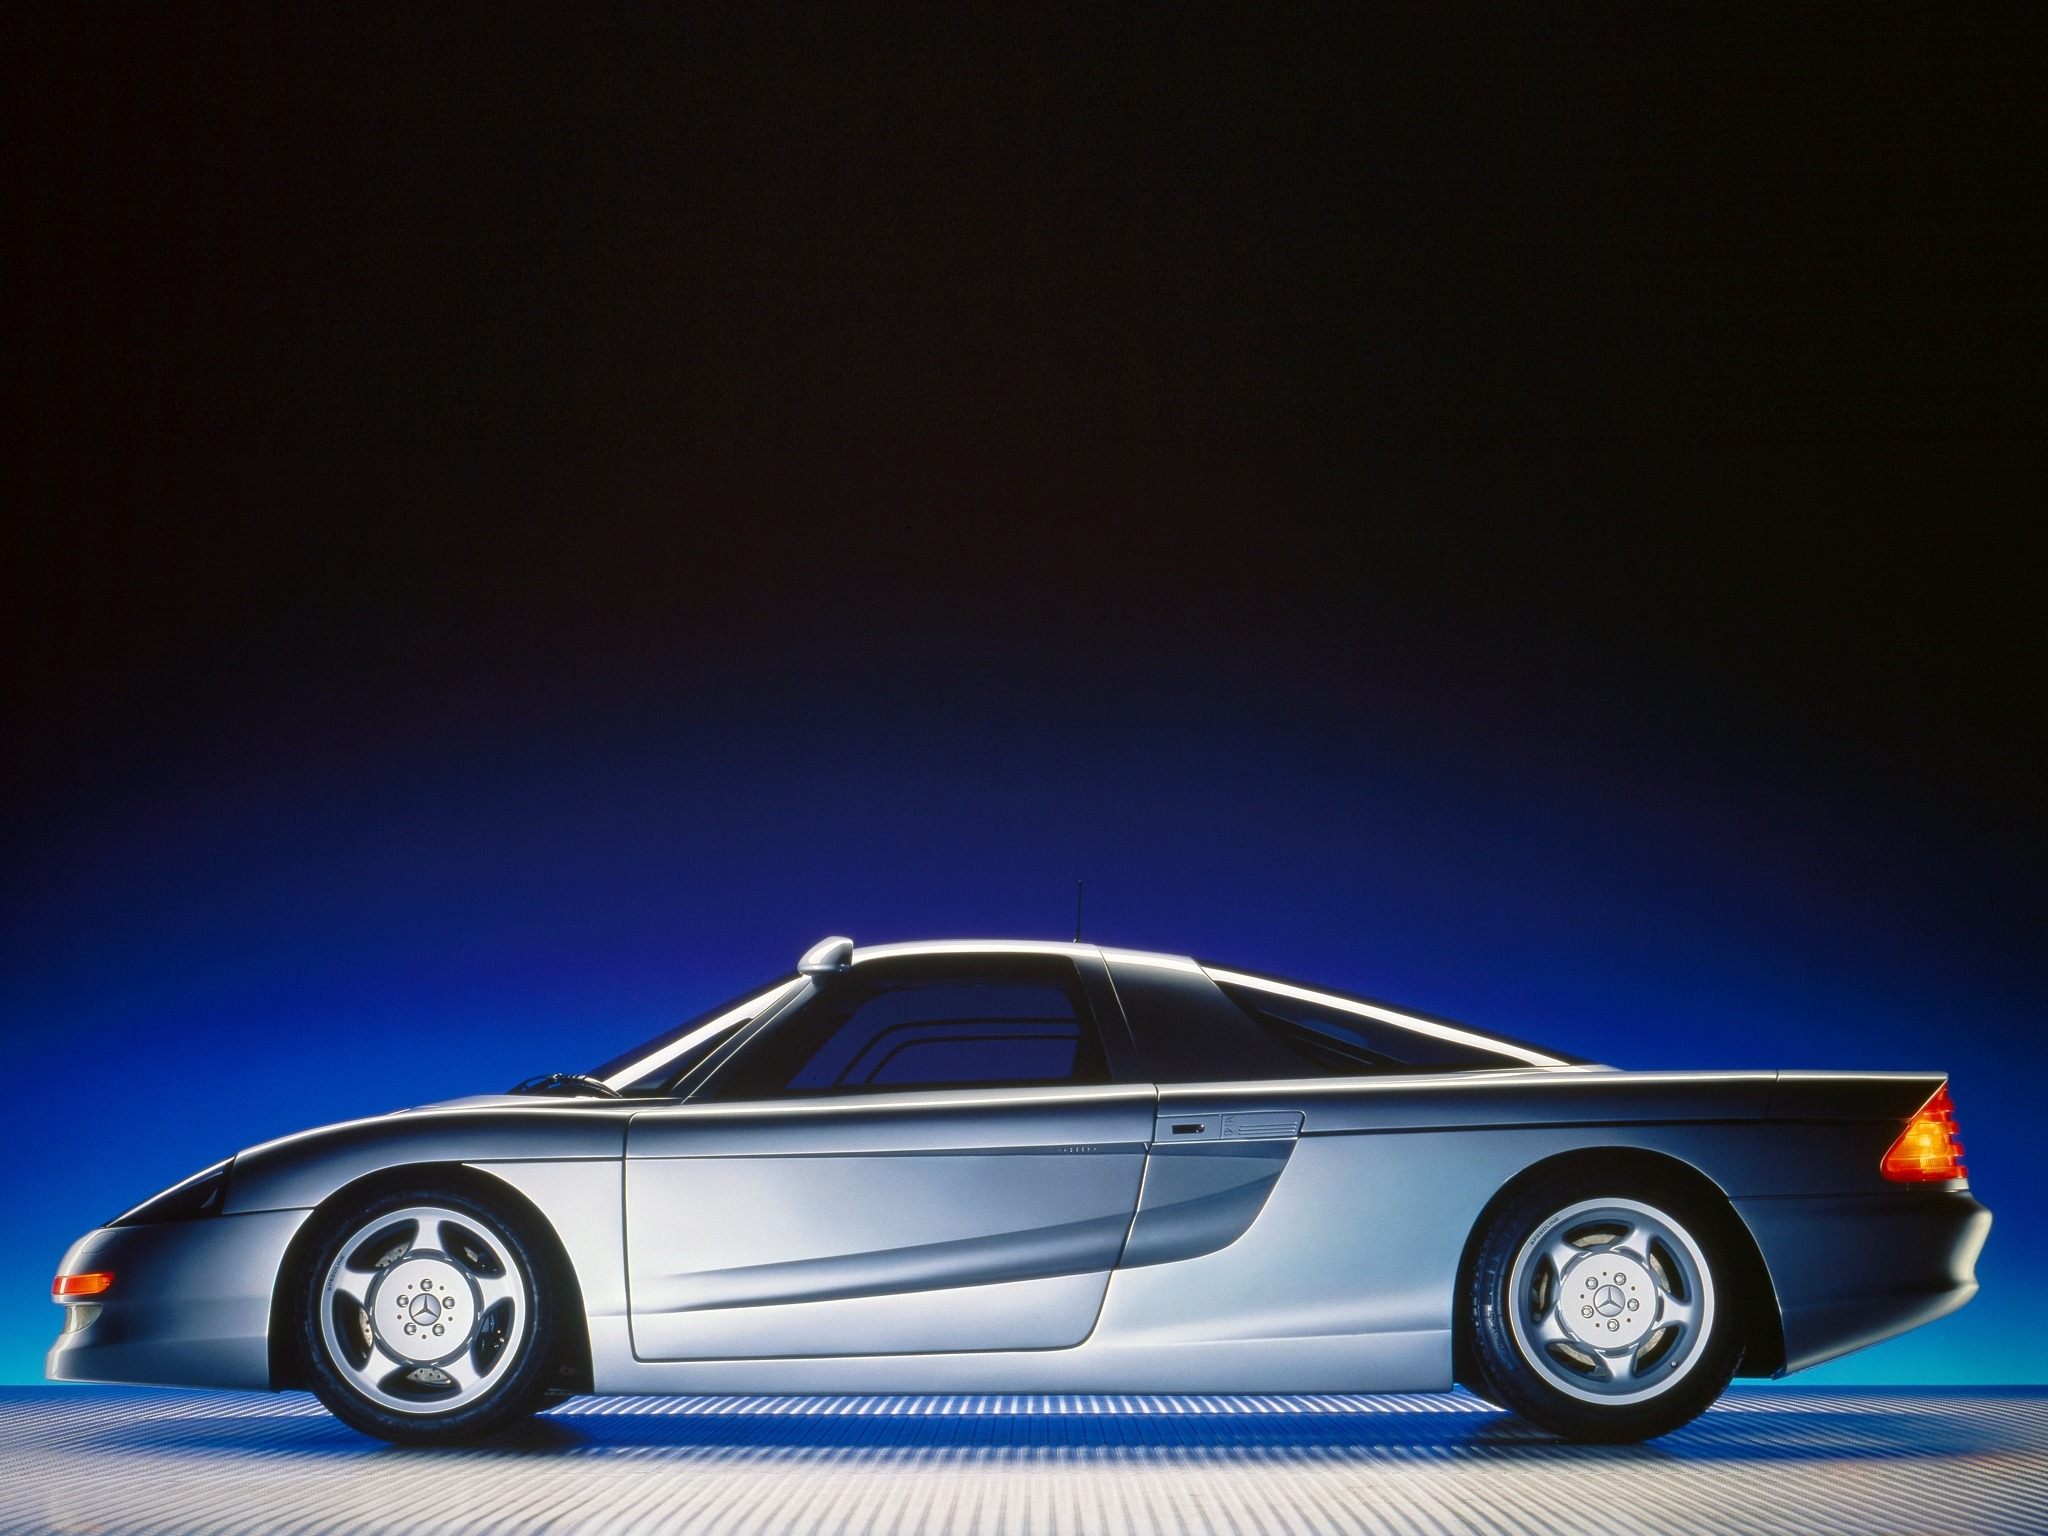 Top 5 Fastest Cars >> Mercedes-Benz C112 Concept (1991) - Old Concept Cars